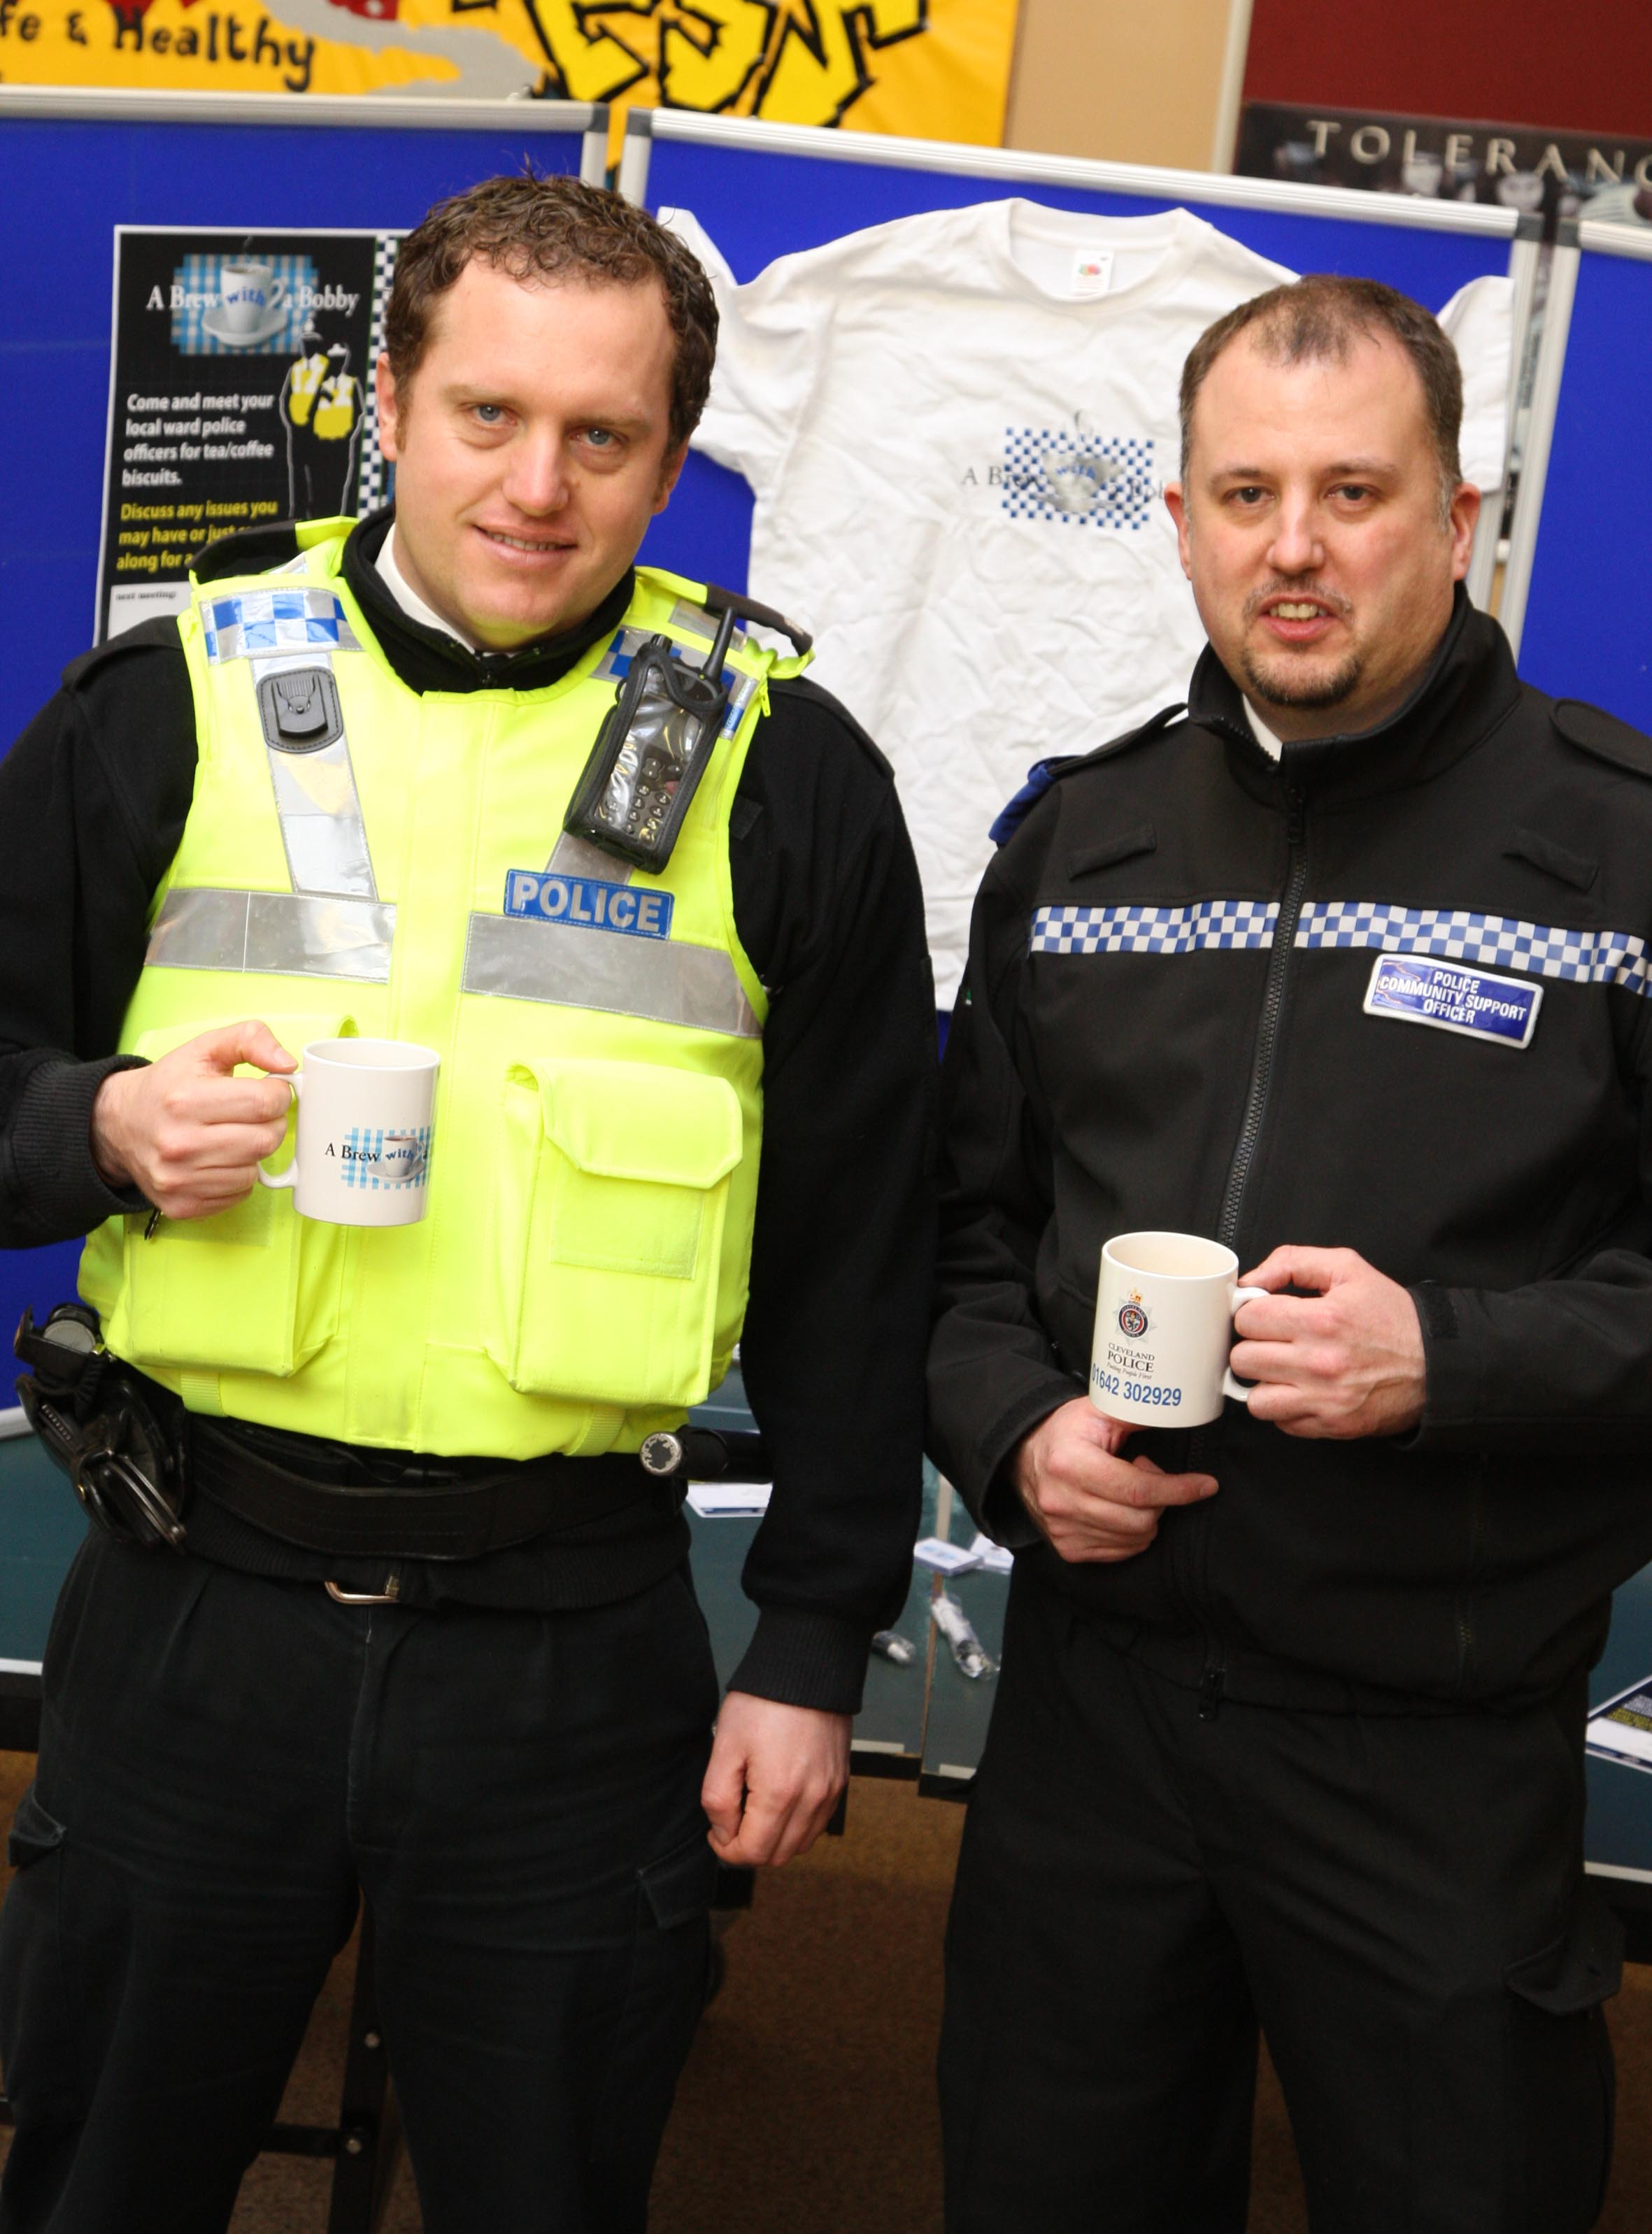 Lingdale residents can have a 'Brew with a Bobby' at Lingdale Youth and Community Centre. PC Paul Hutchinson, left, and PCSO Paul Payne